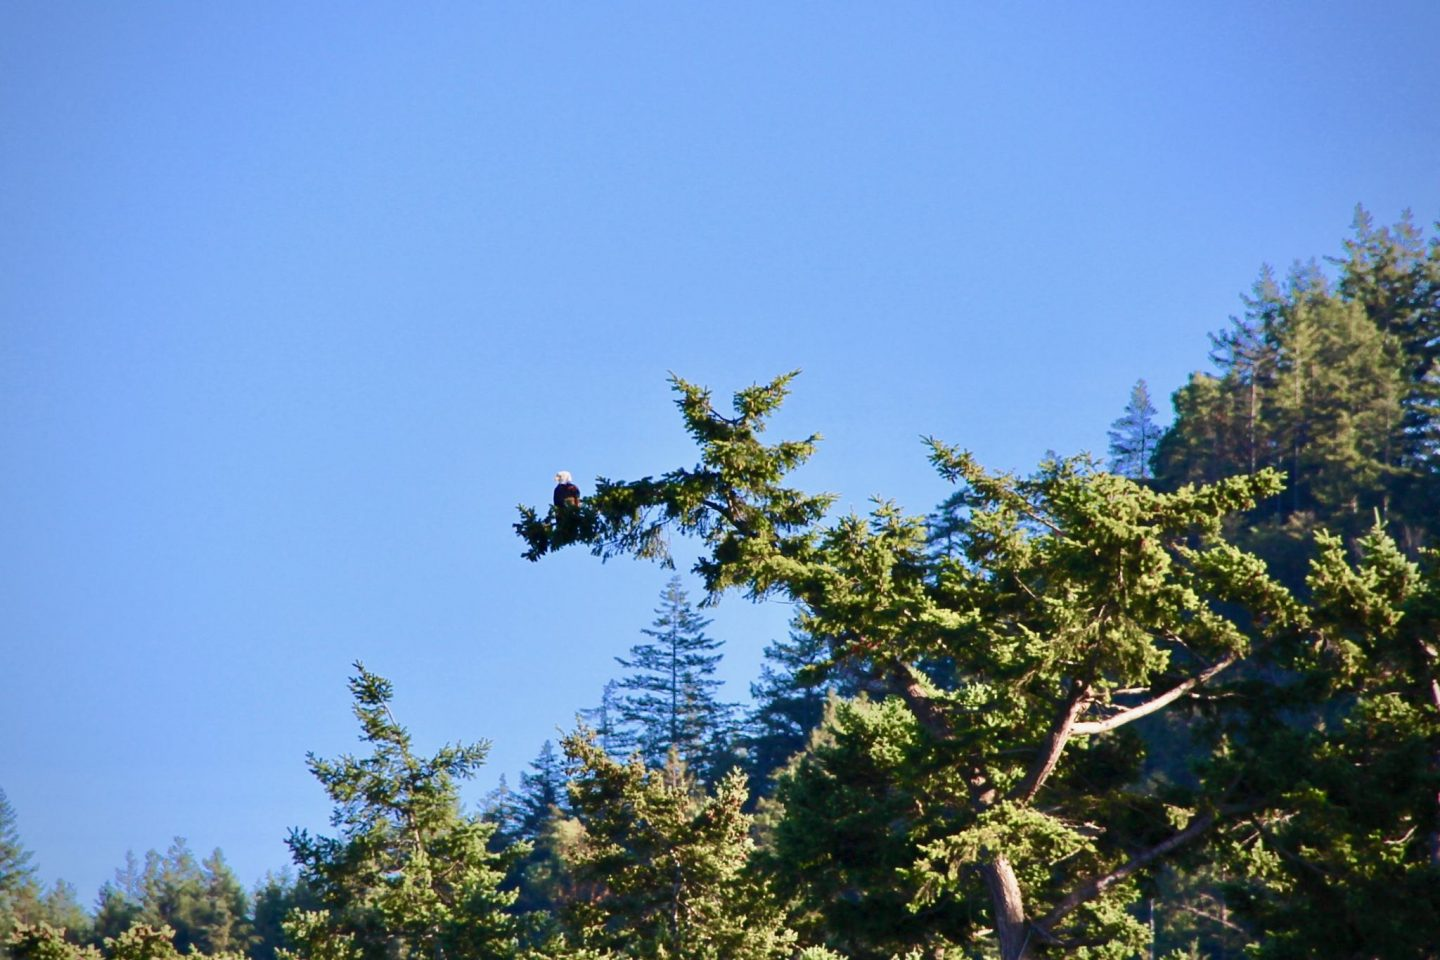 Bald Eagle near San Juan Islands, Washington | The Spectacular Adventurer